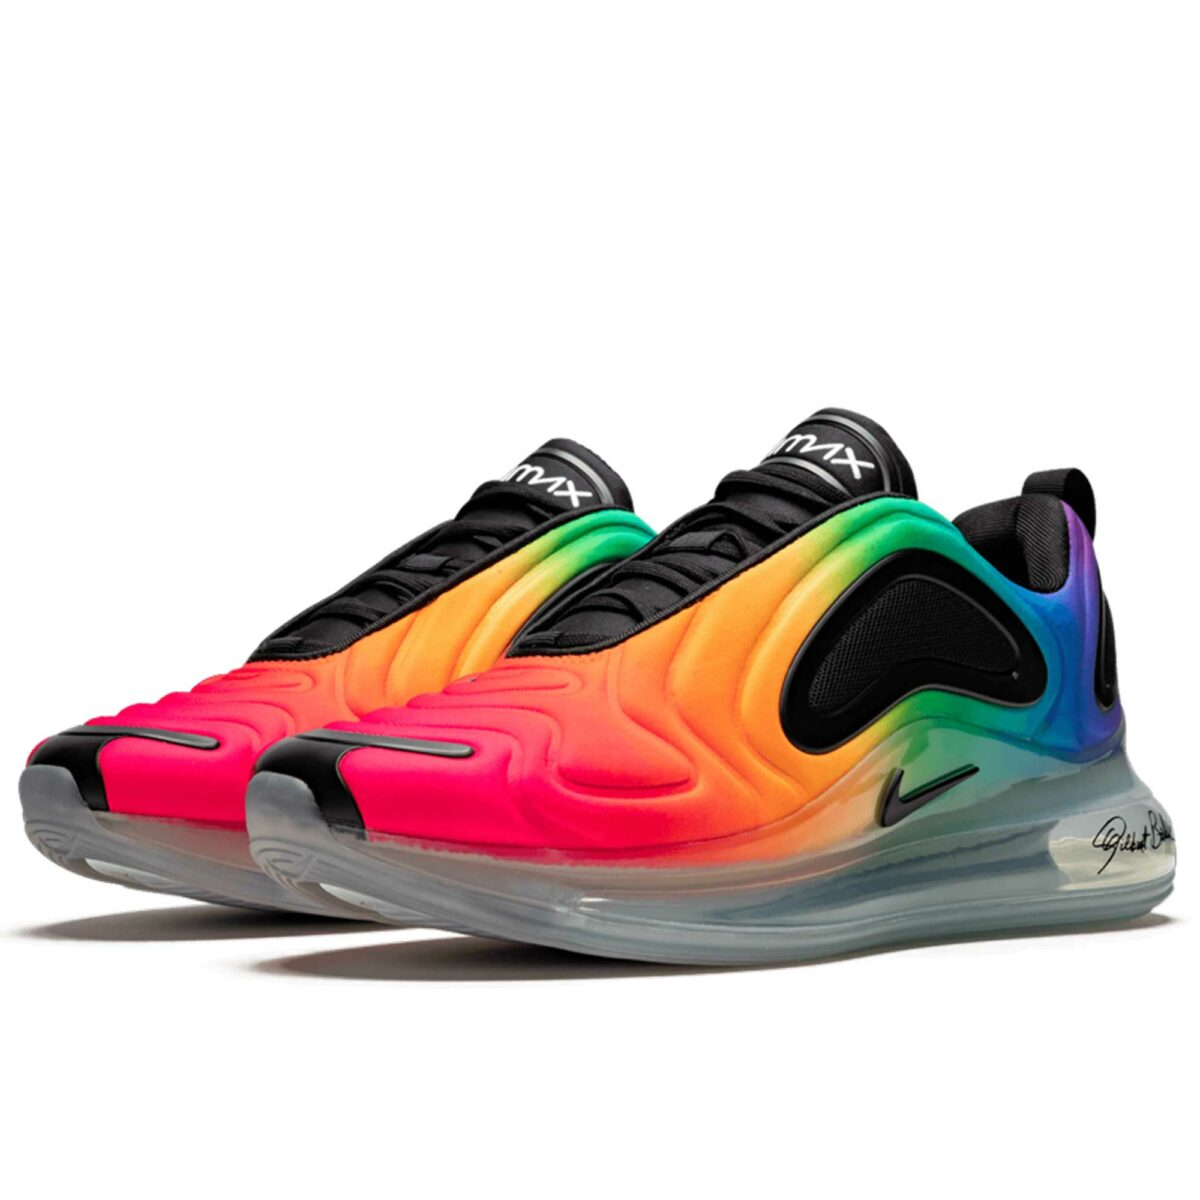 nike air max 720 be true multi color CJ5472_900 купить